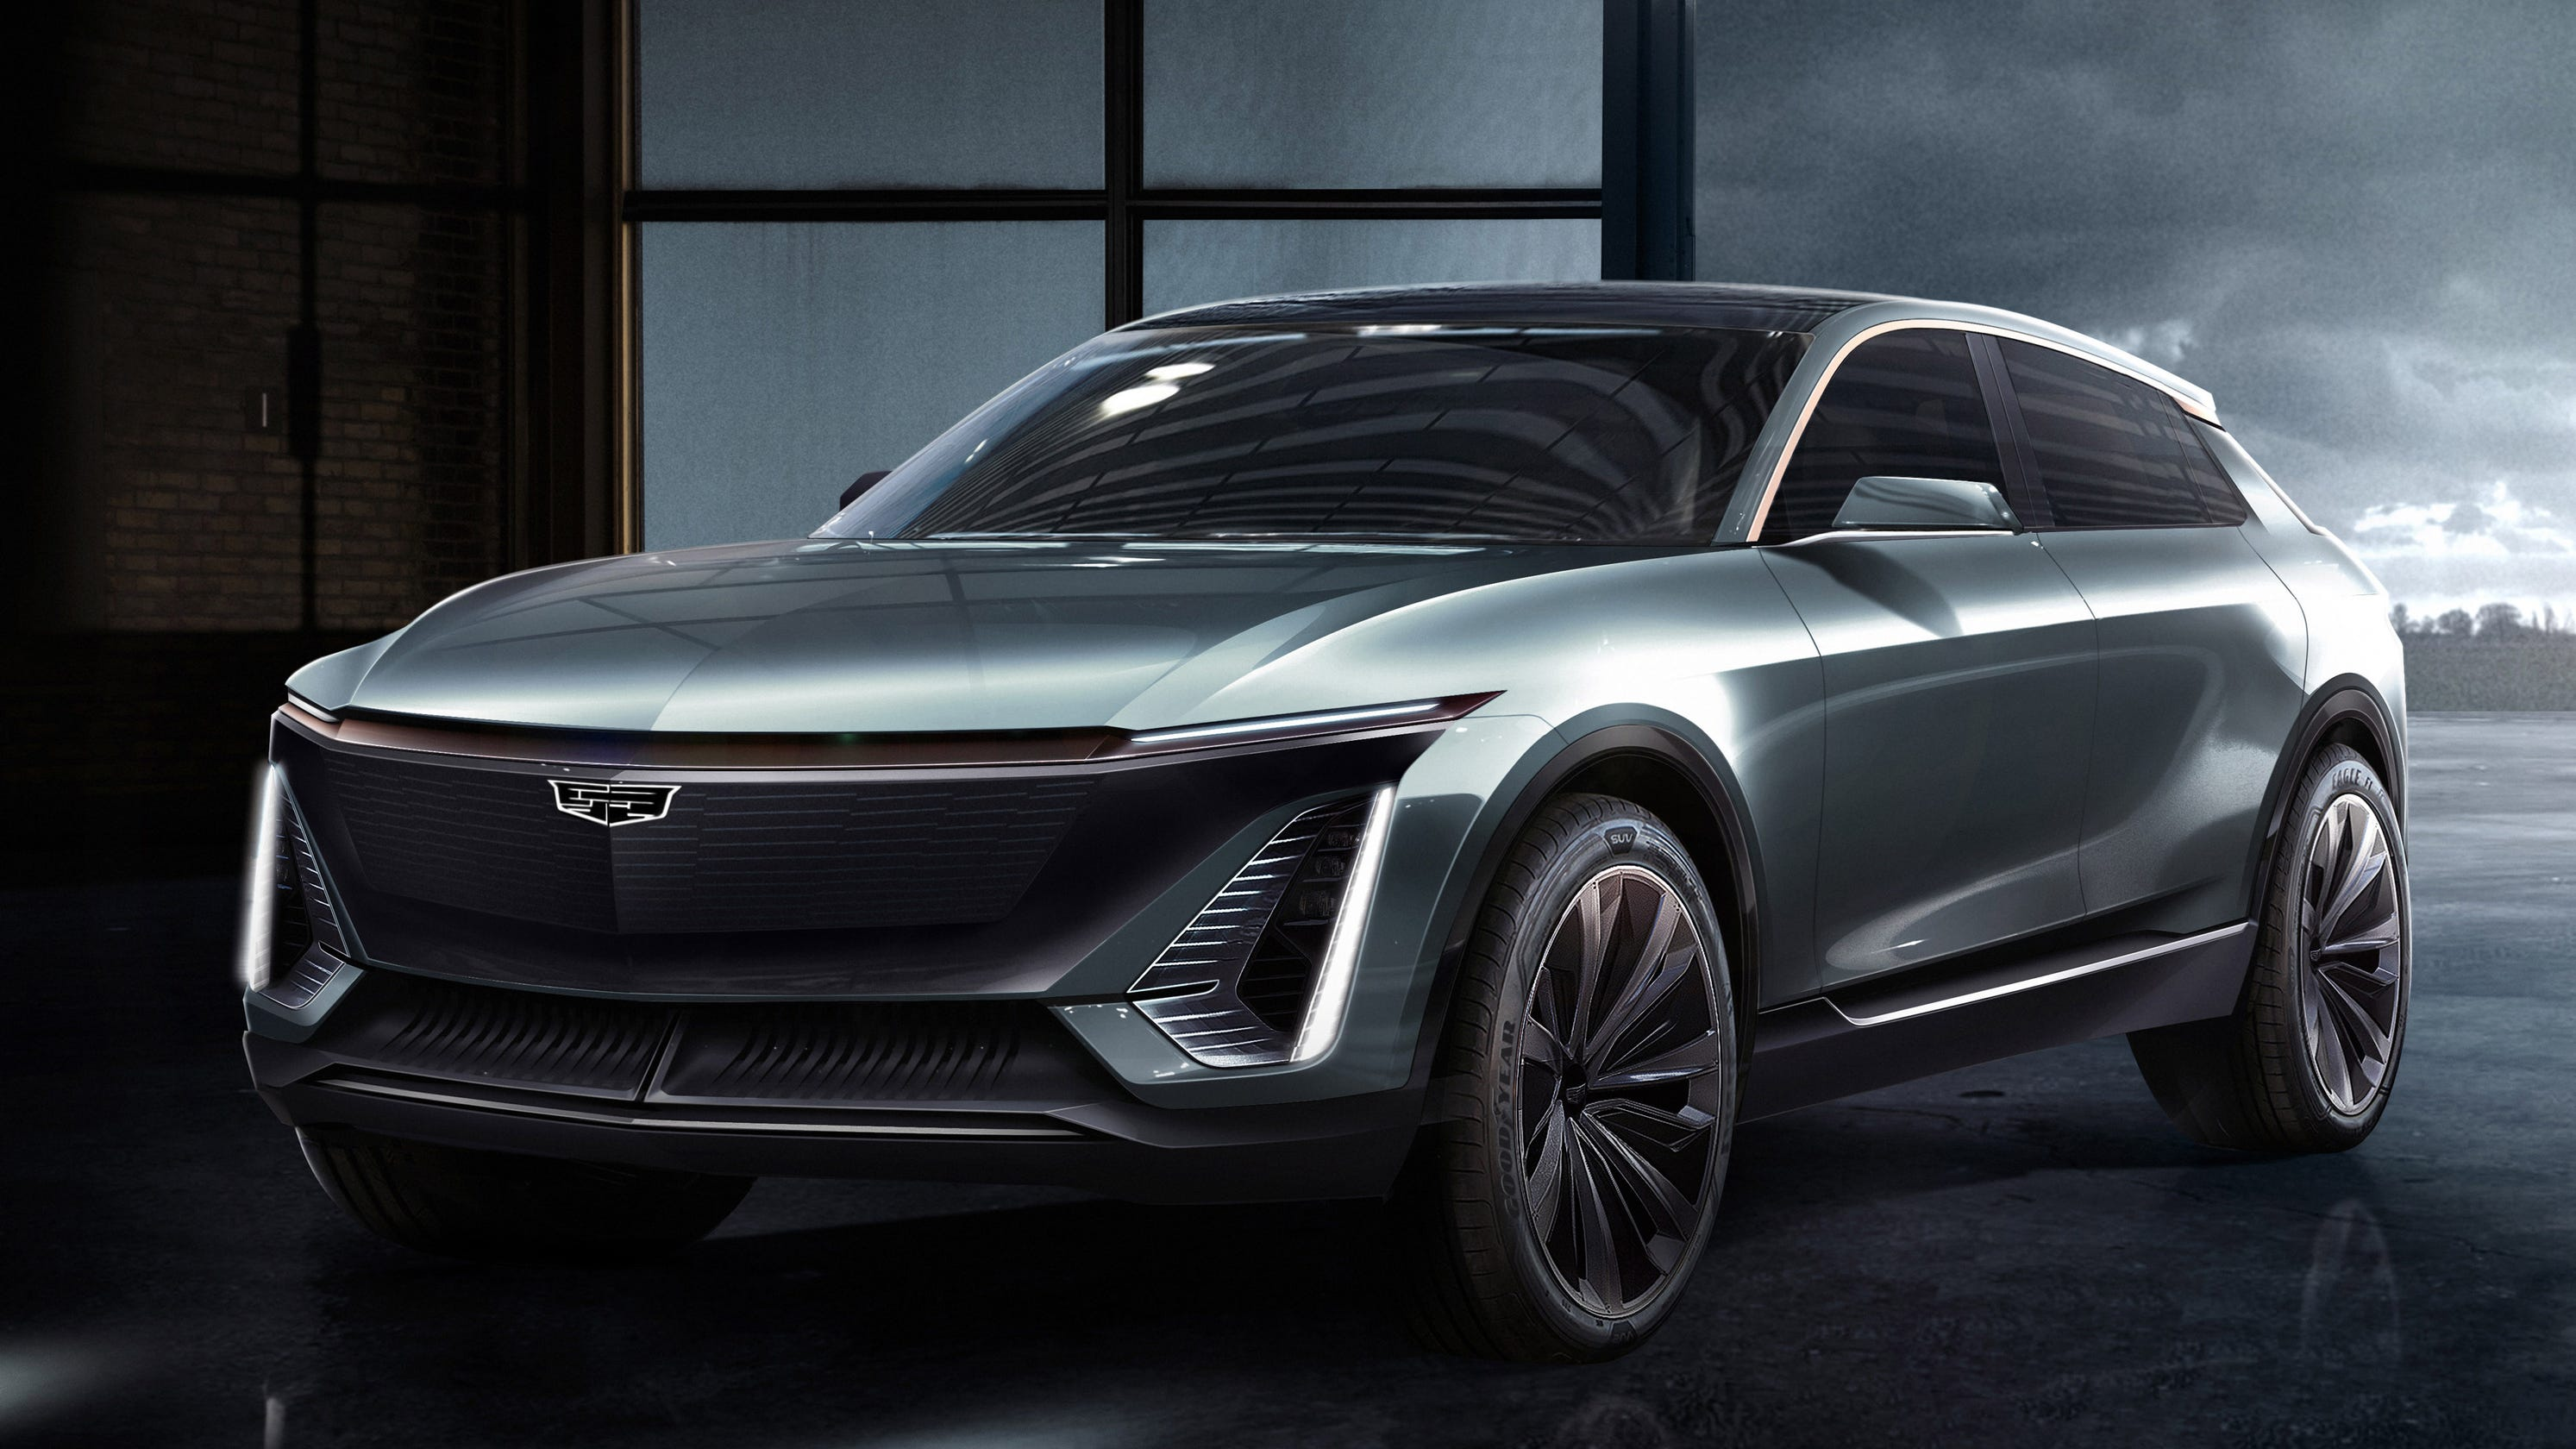 Tonight: Cadillac Lyriq electric luxury SUV reveal happens and includes live Q&A